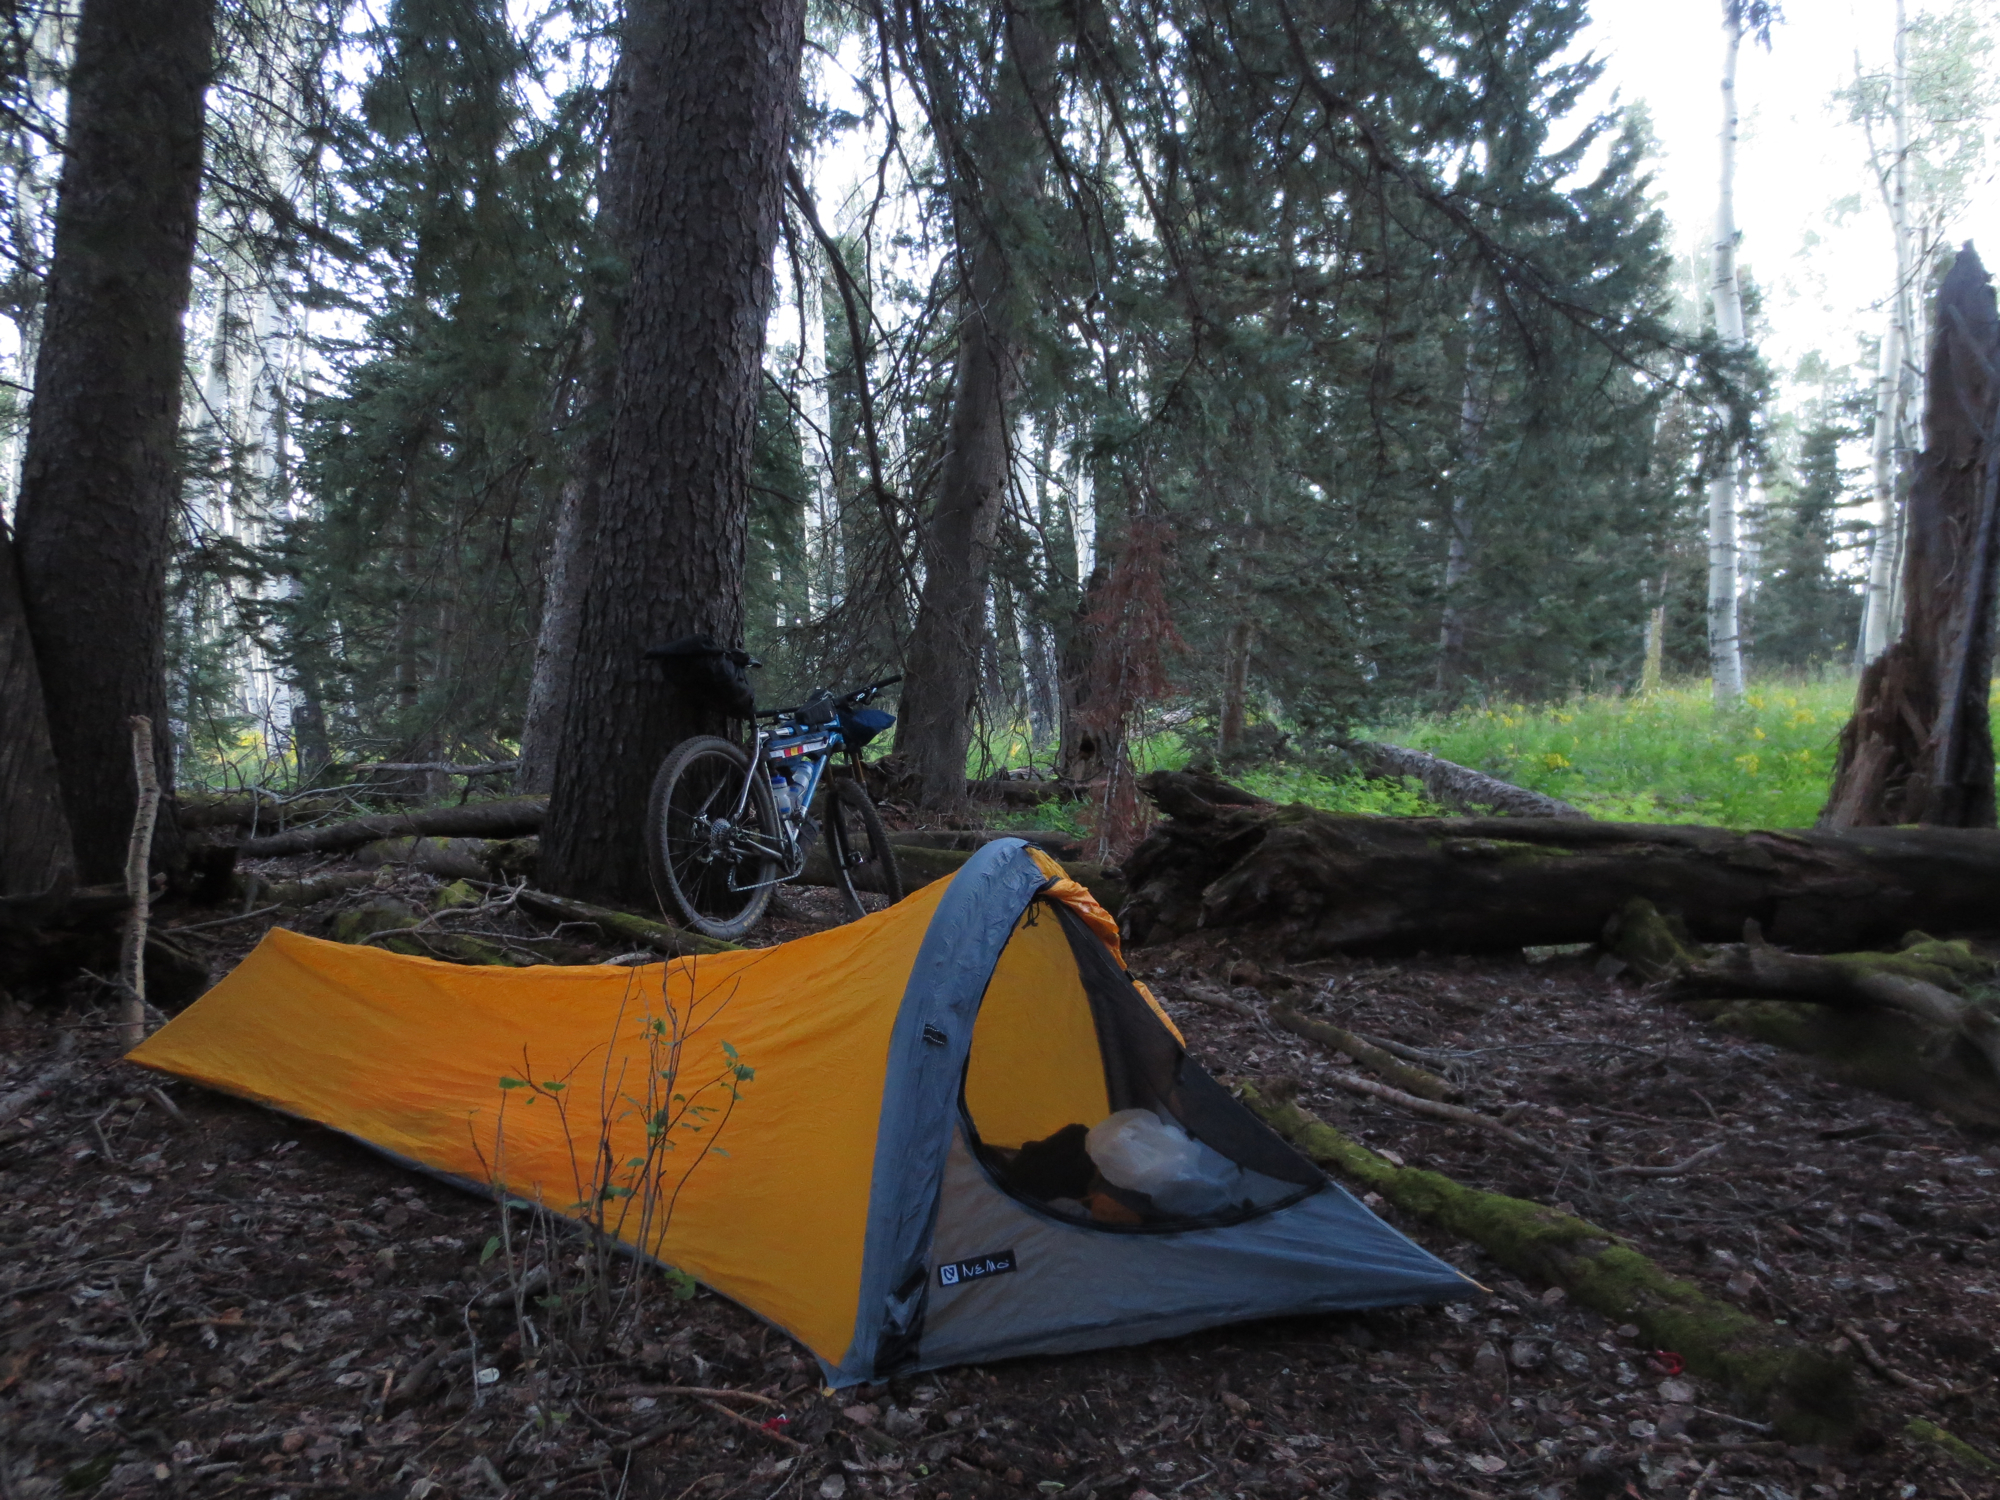 Camp 1 was pretty nice, under some pine trees with soft duff to sleep in. Ahhh...